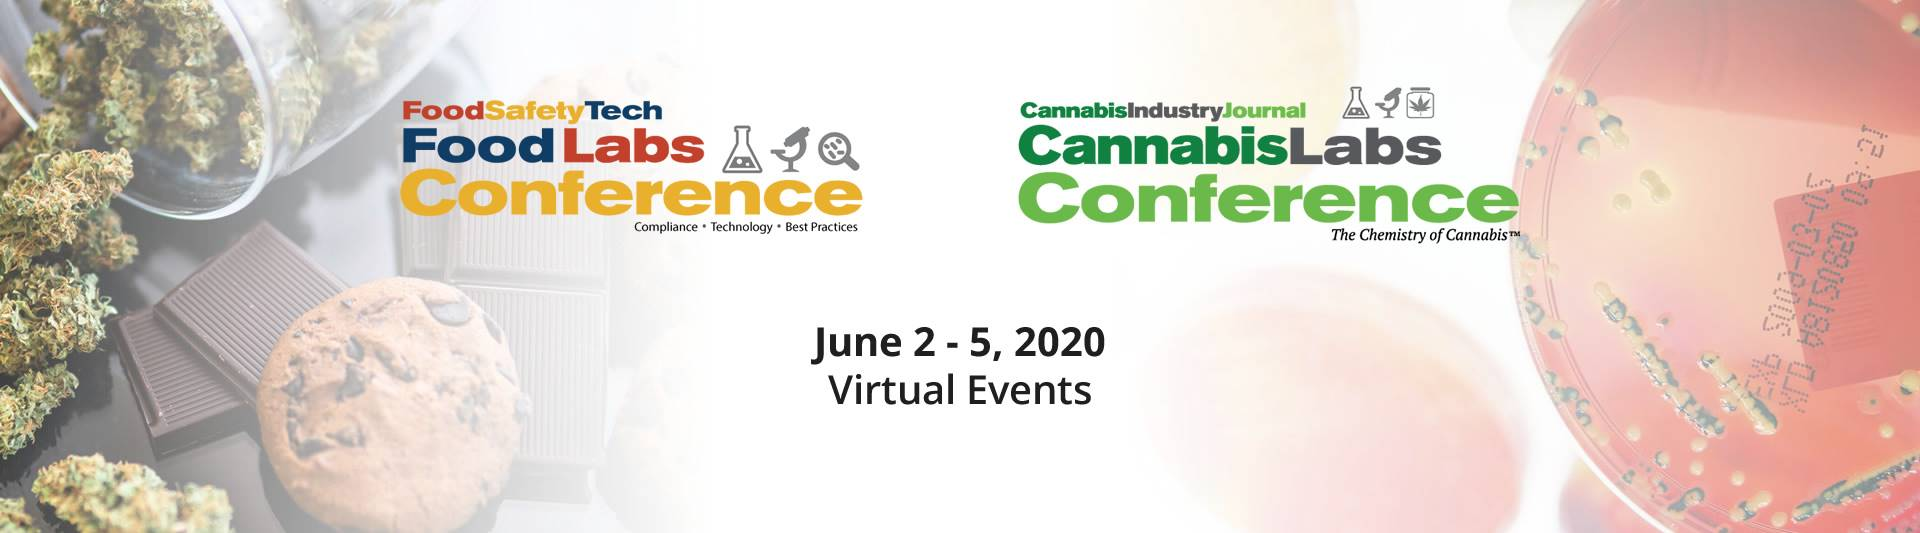 Cannabis Labs / Food Labs Conference